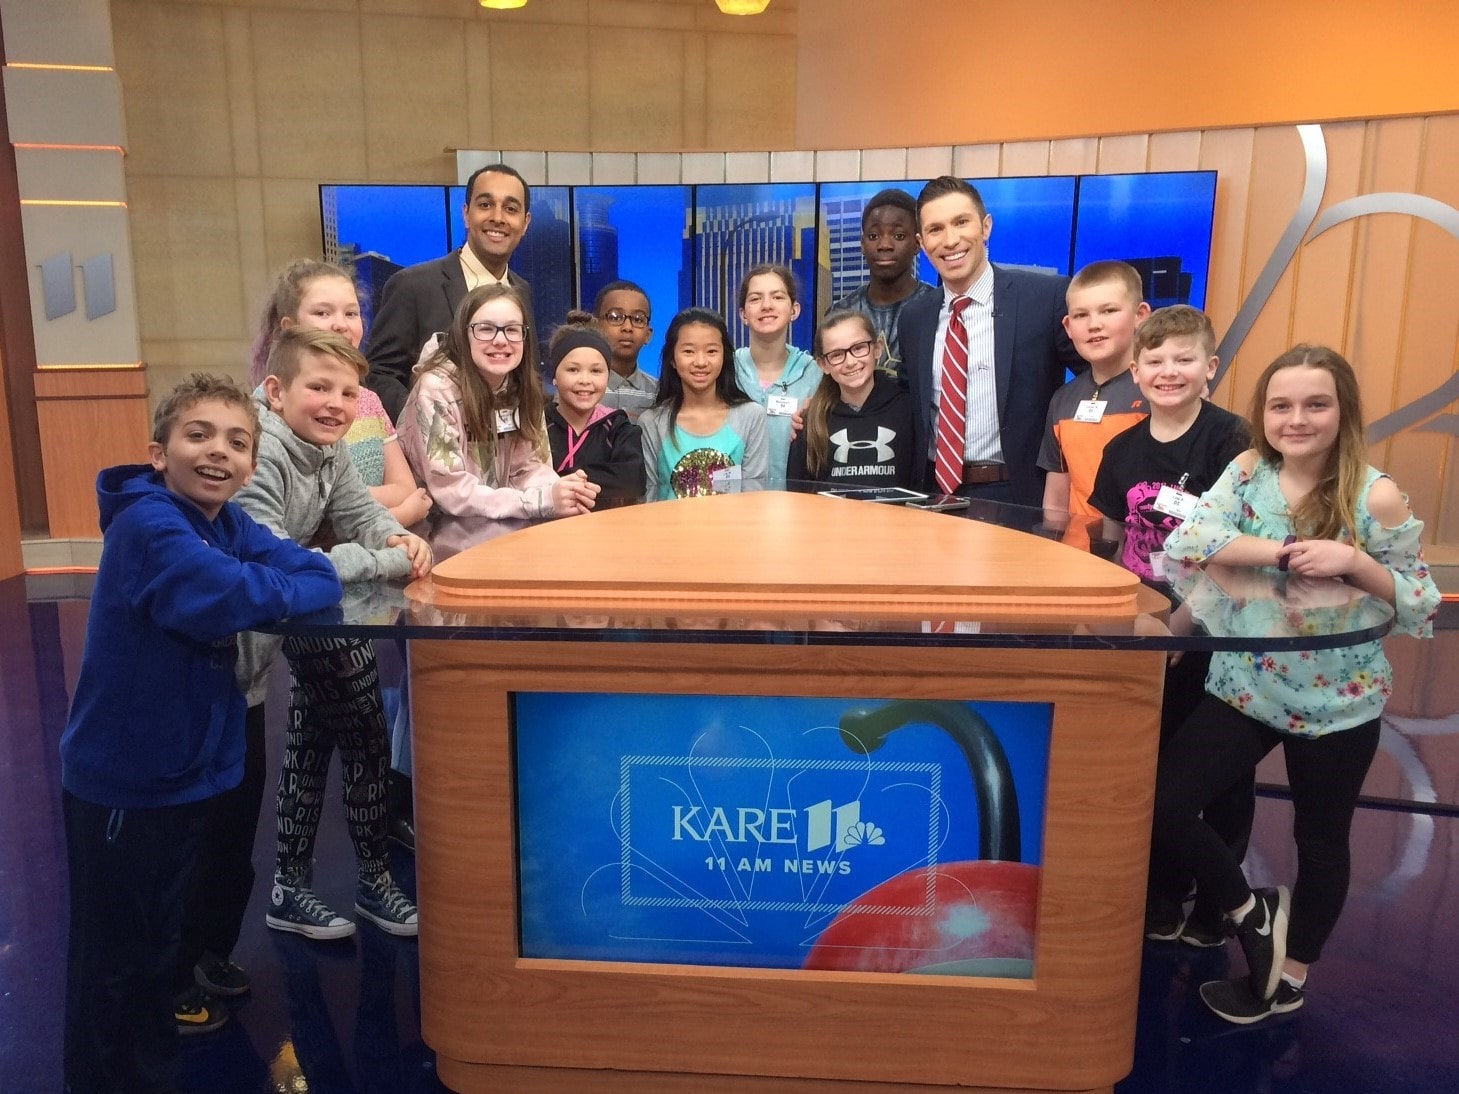 field trip to a local news station